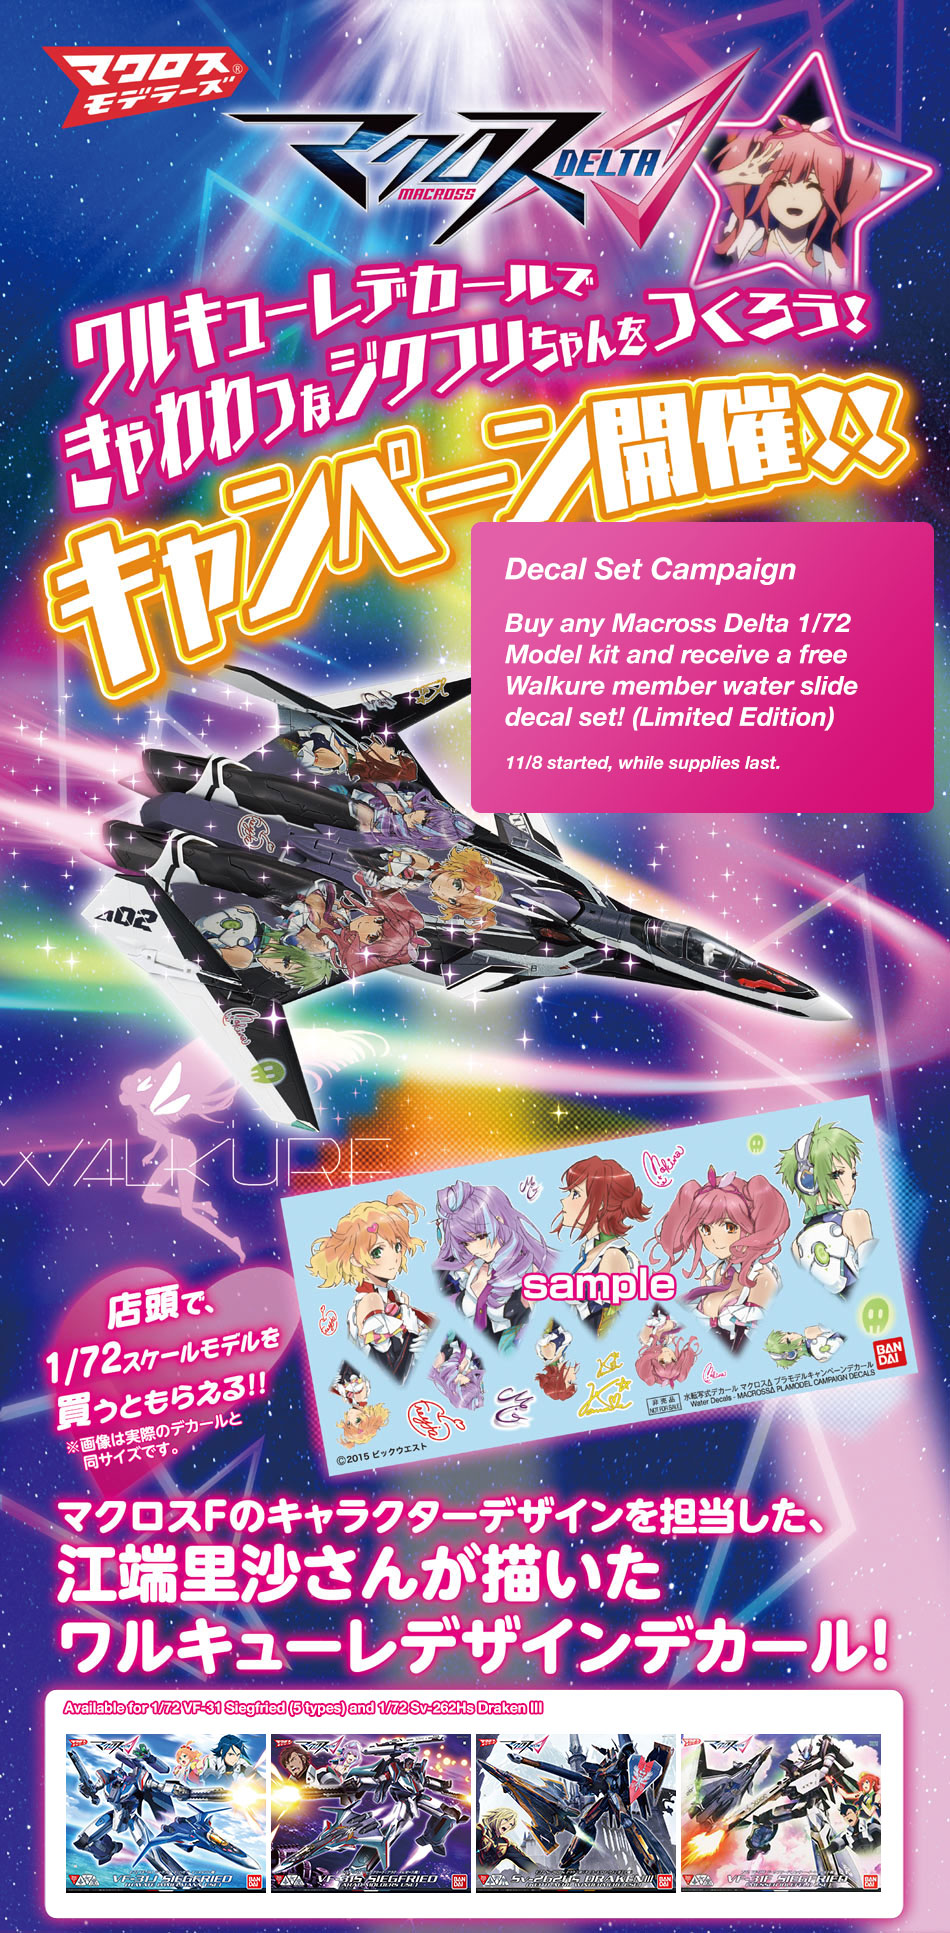 Macross Delta Walkure Water Slide Decal Campaign